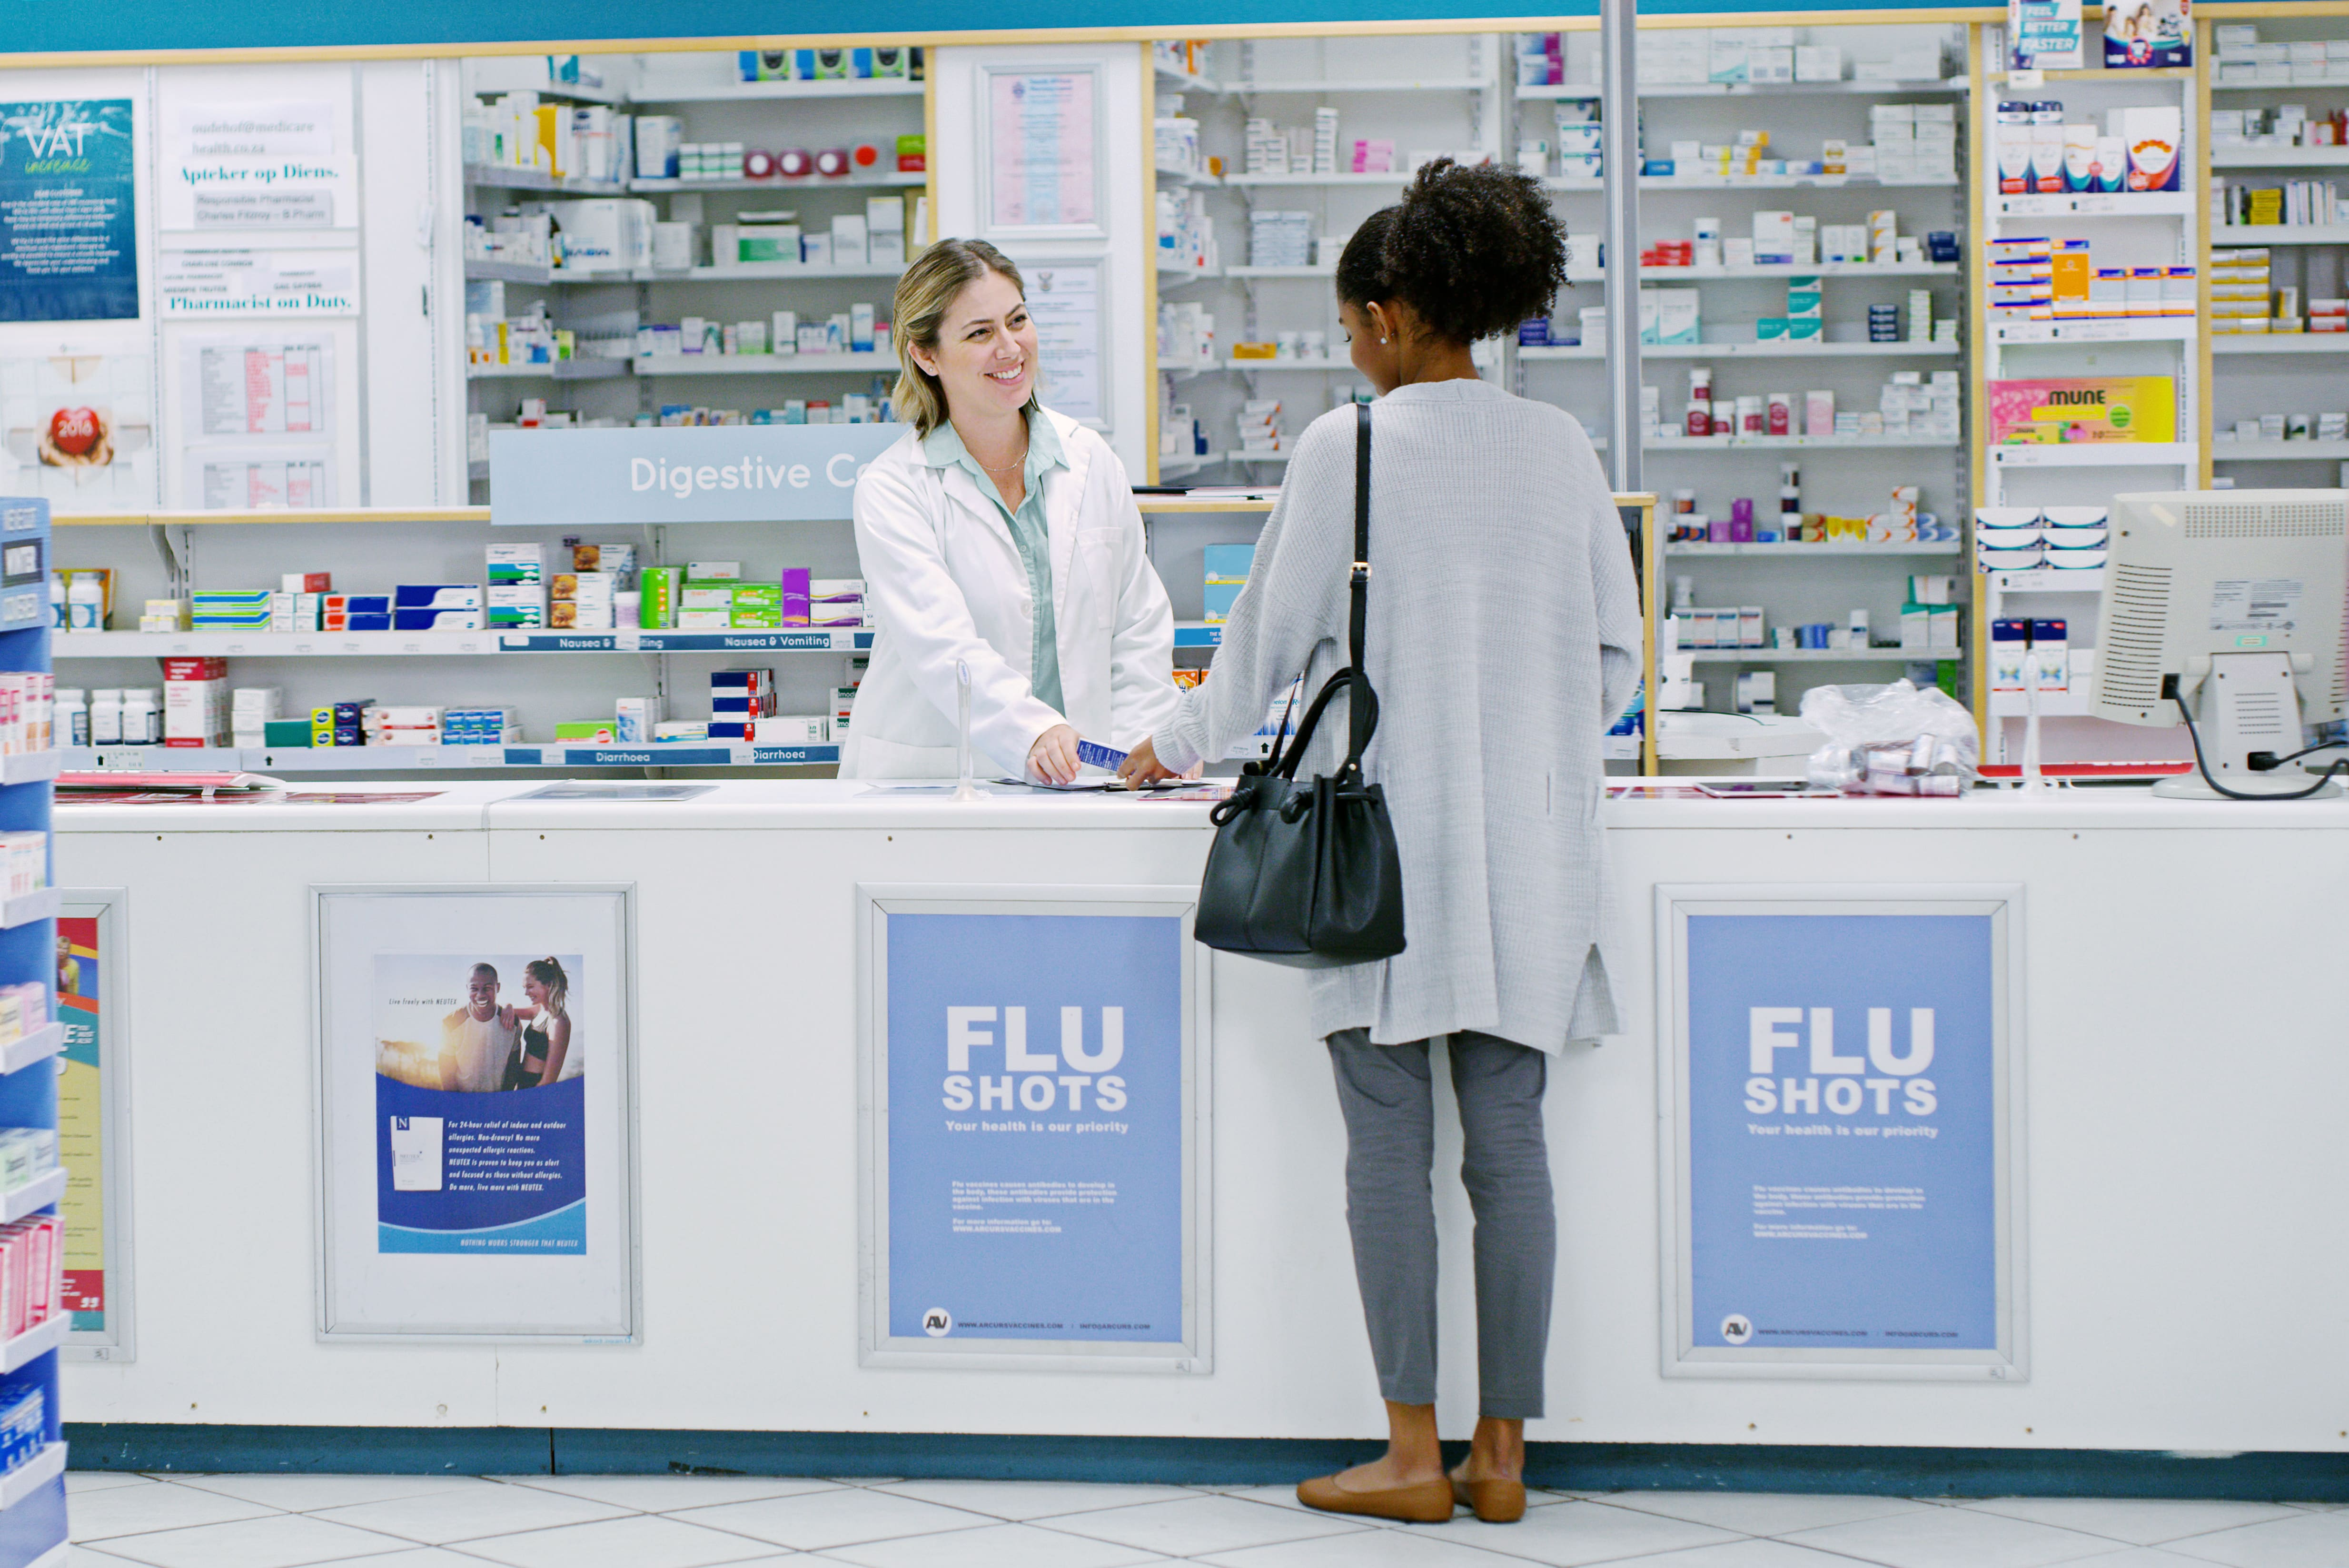 Pharmacies image